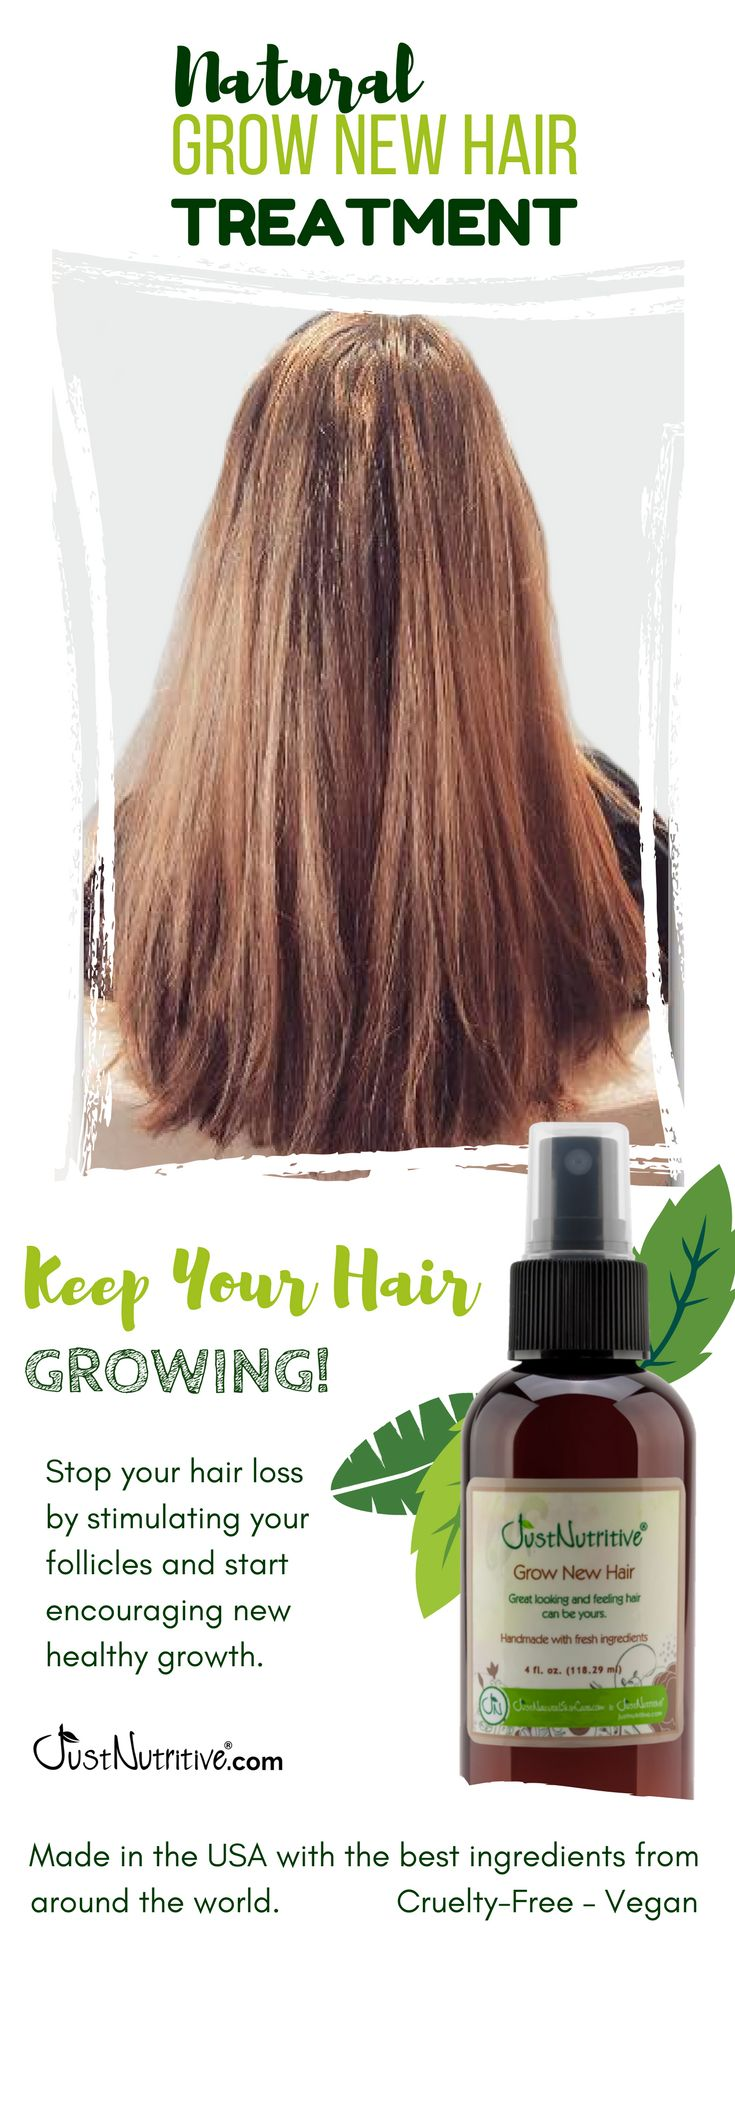 Not All Hair Loss is Permanent. www.justnutritive.com/copy-of-gnew-hair-therapy-...